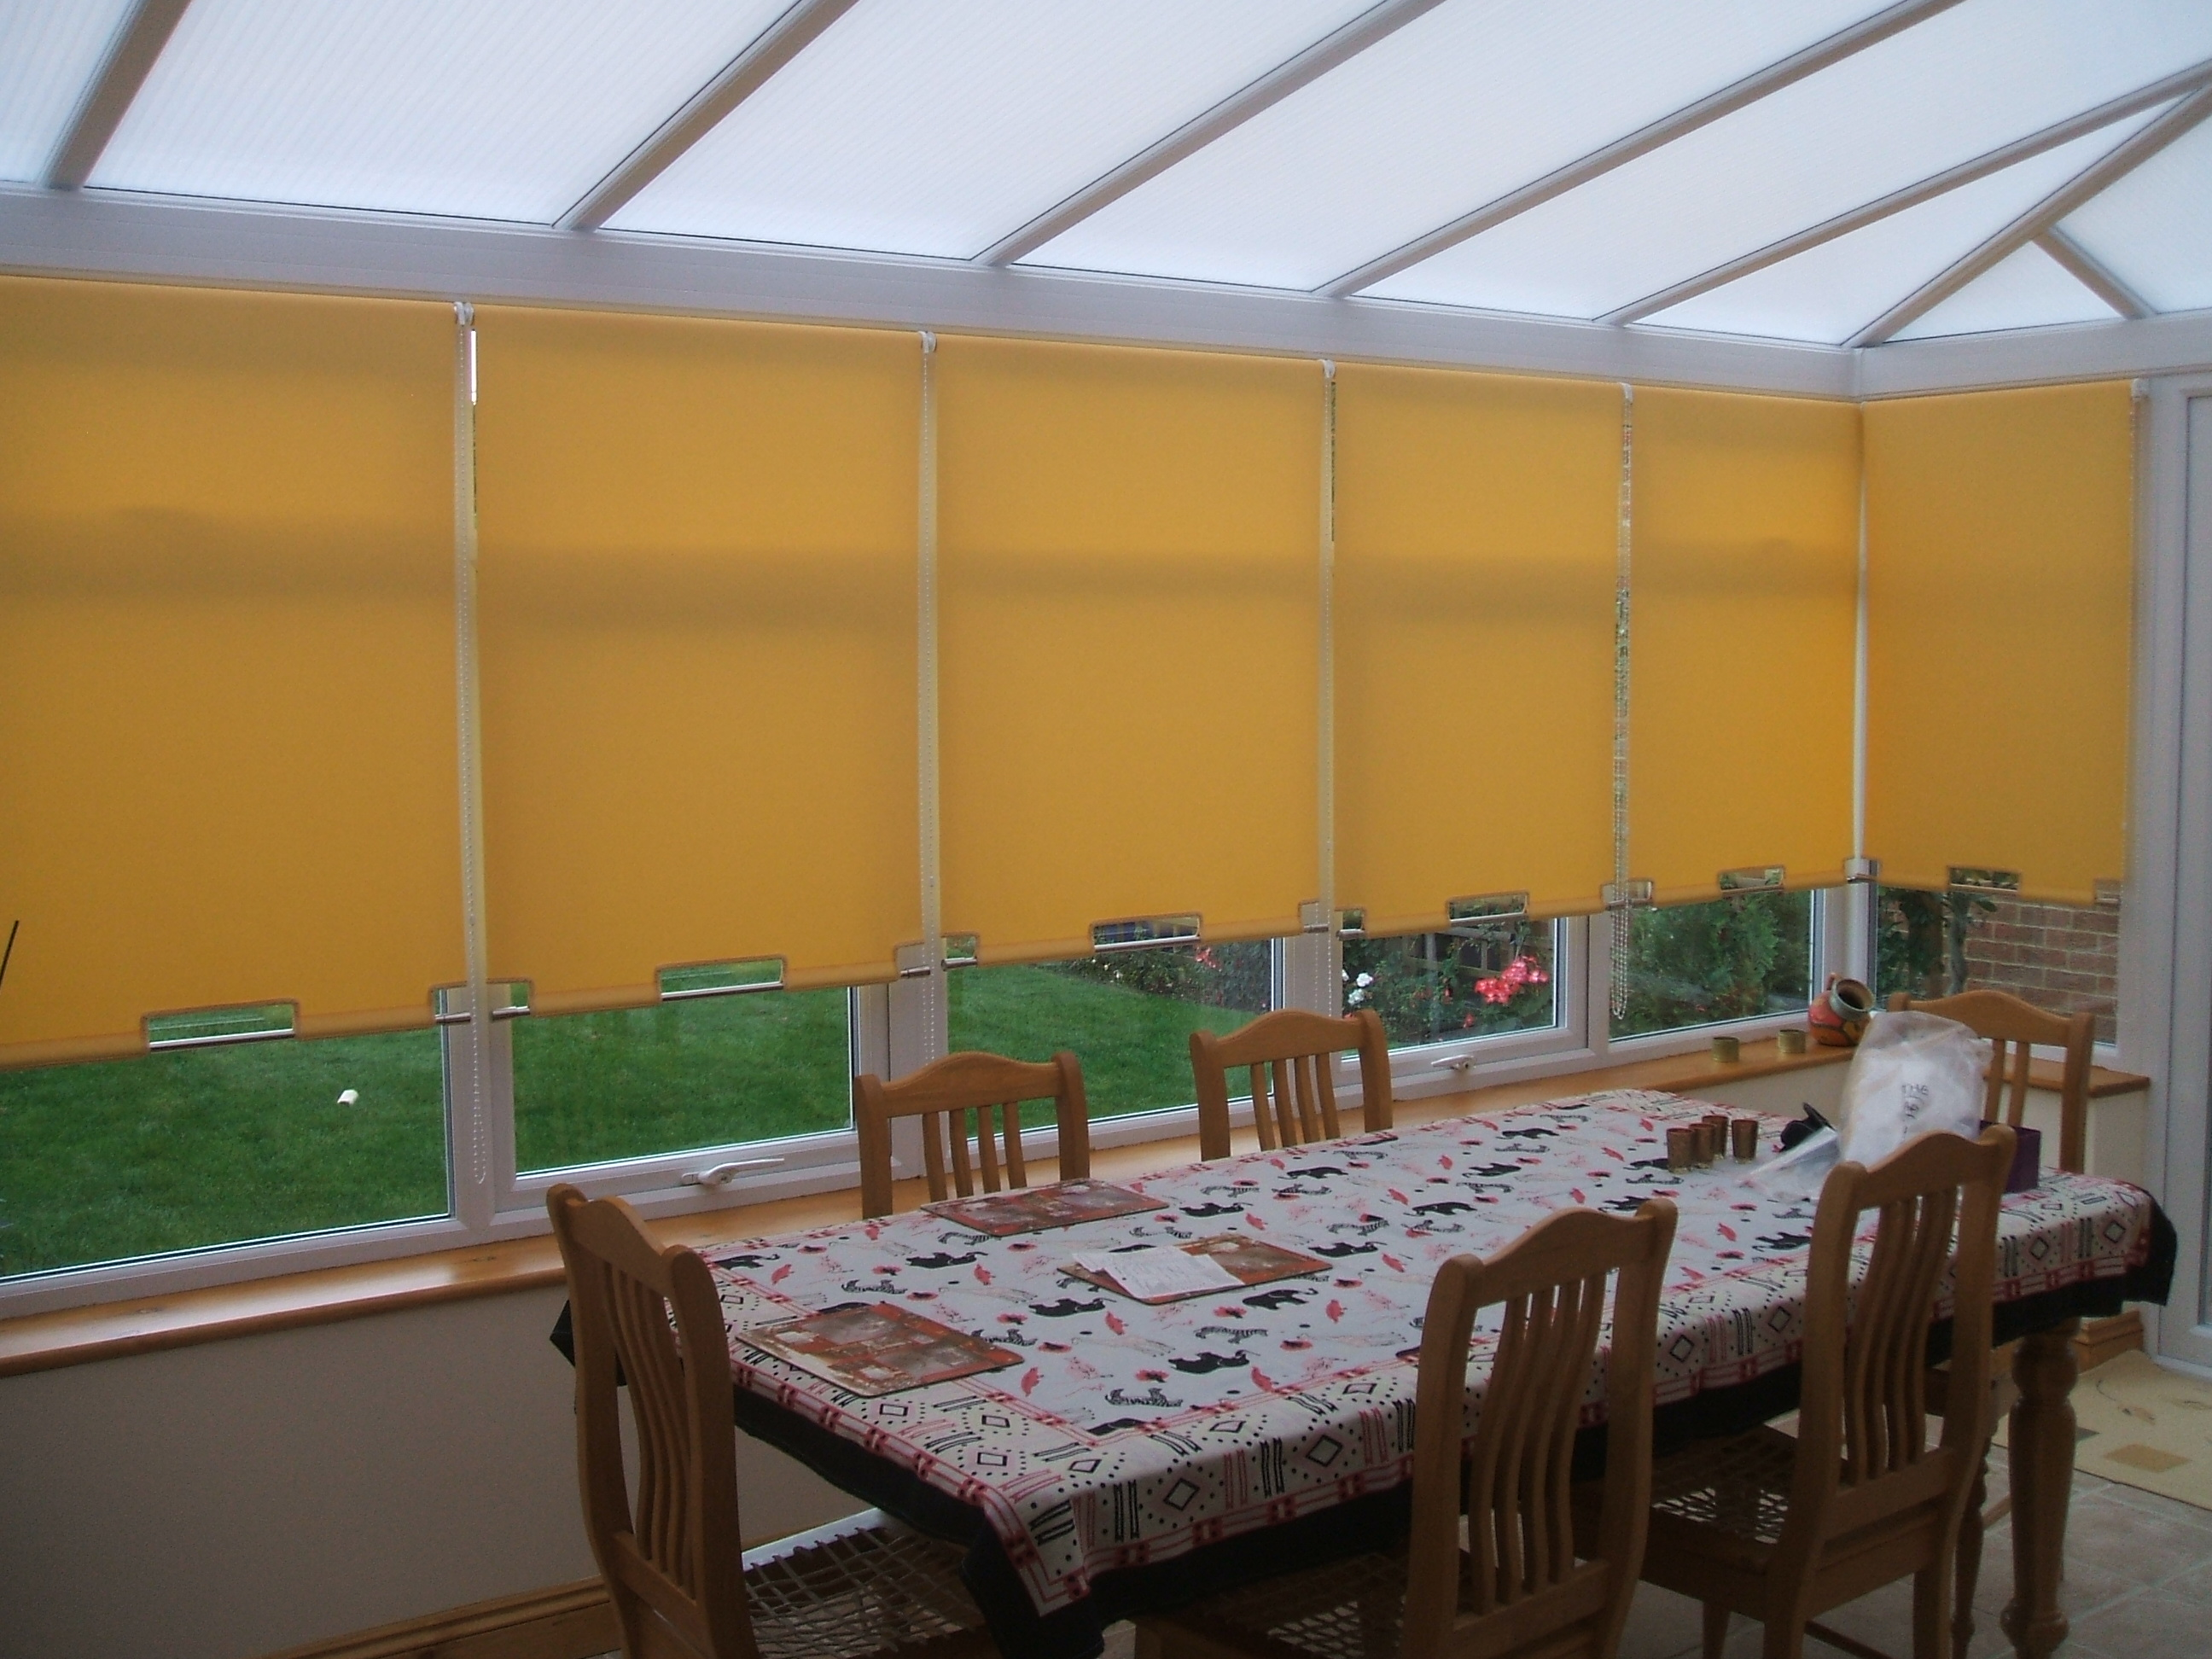 Roller Blinds In Conservatory Shaped Bottoms With Chrome Poles Baileys Blinds